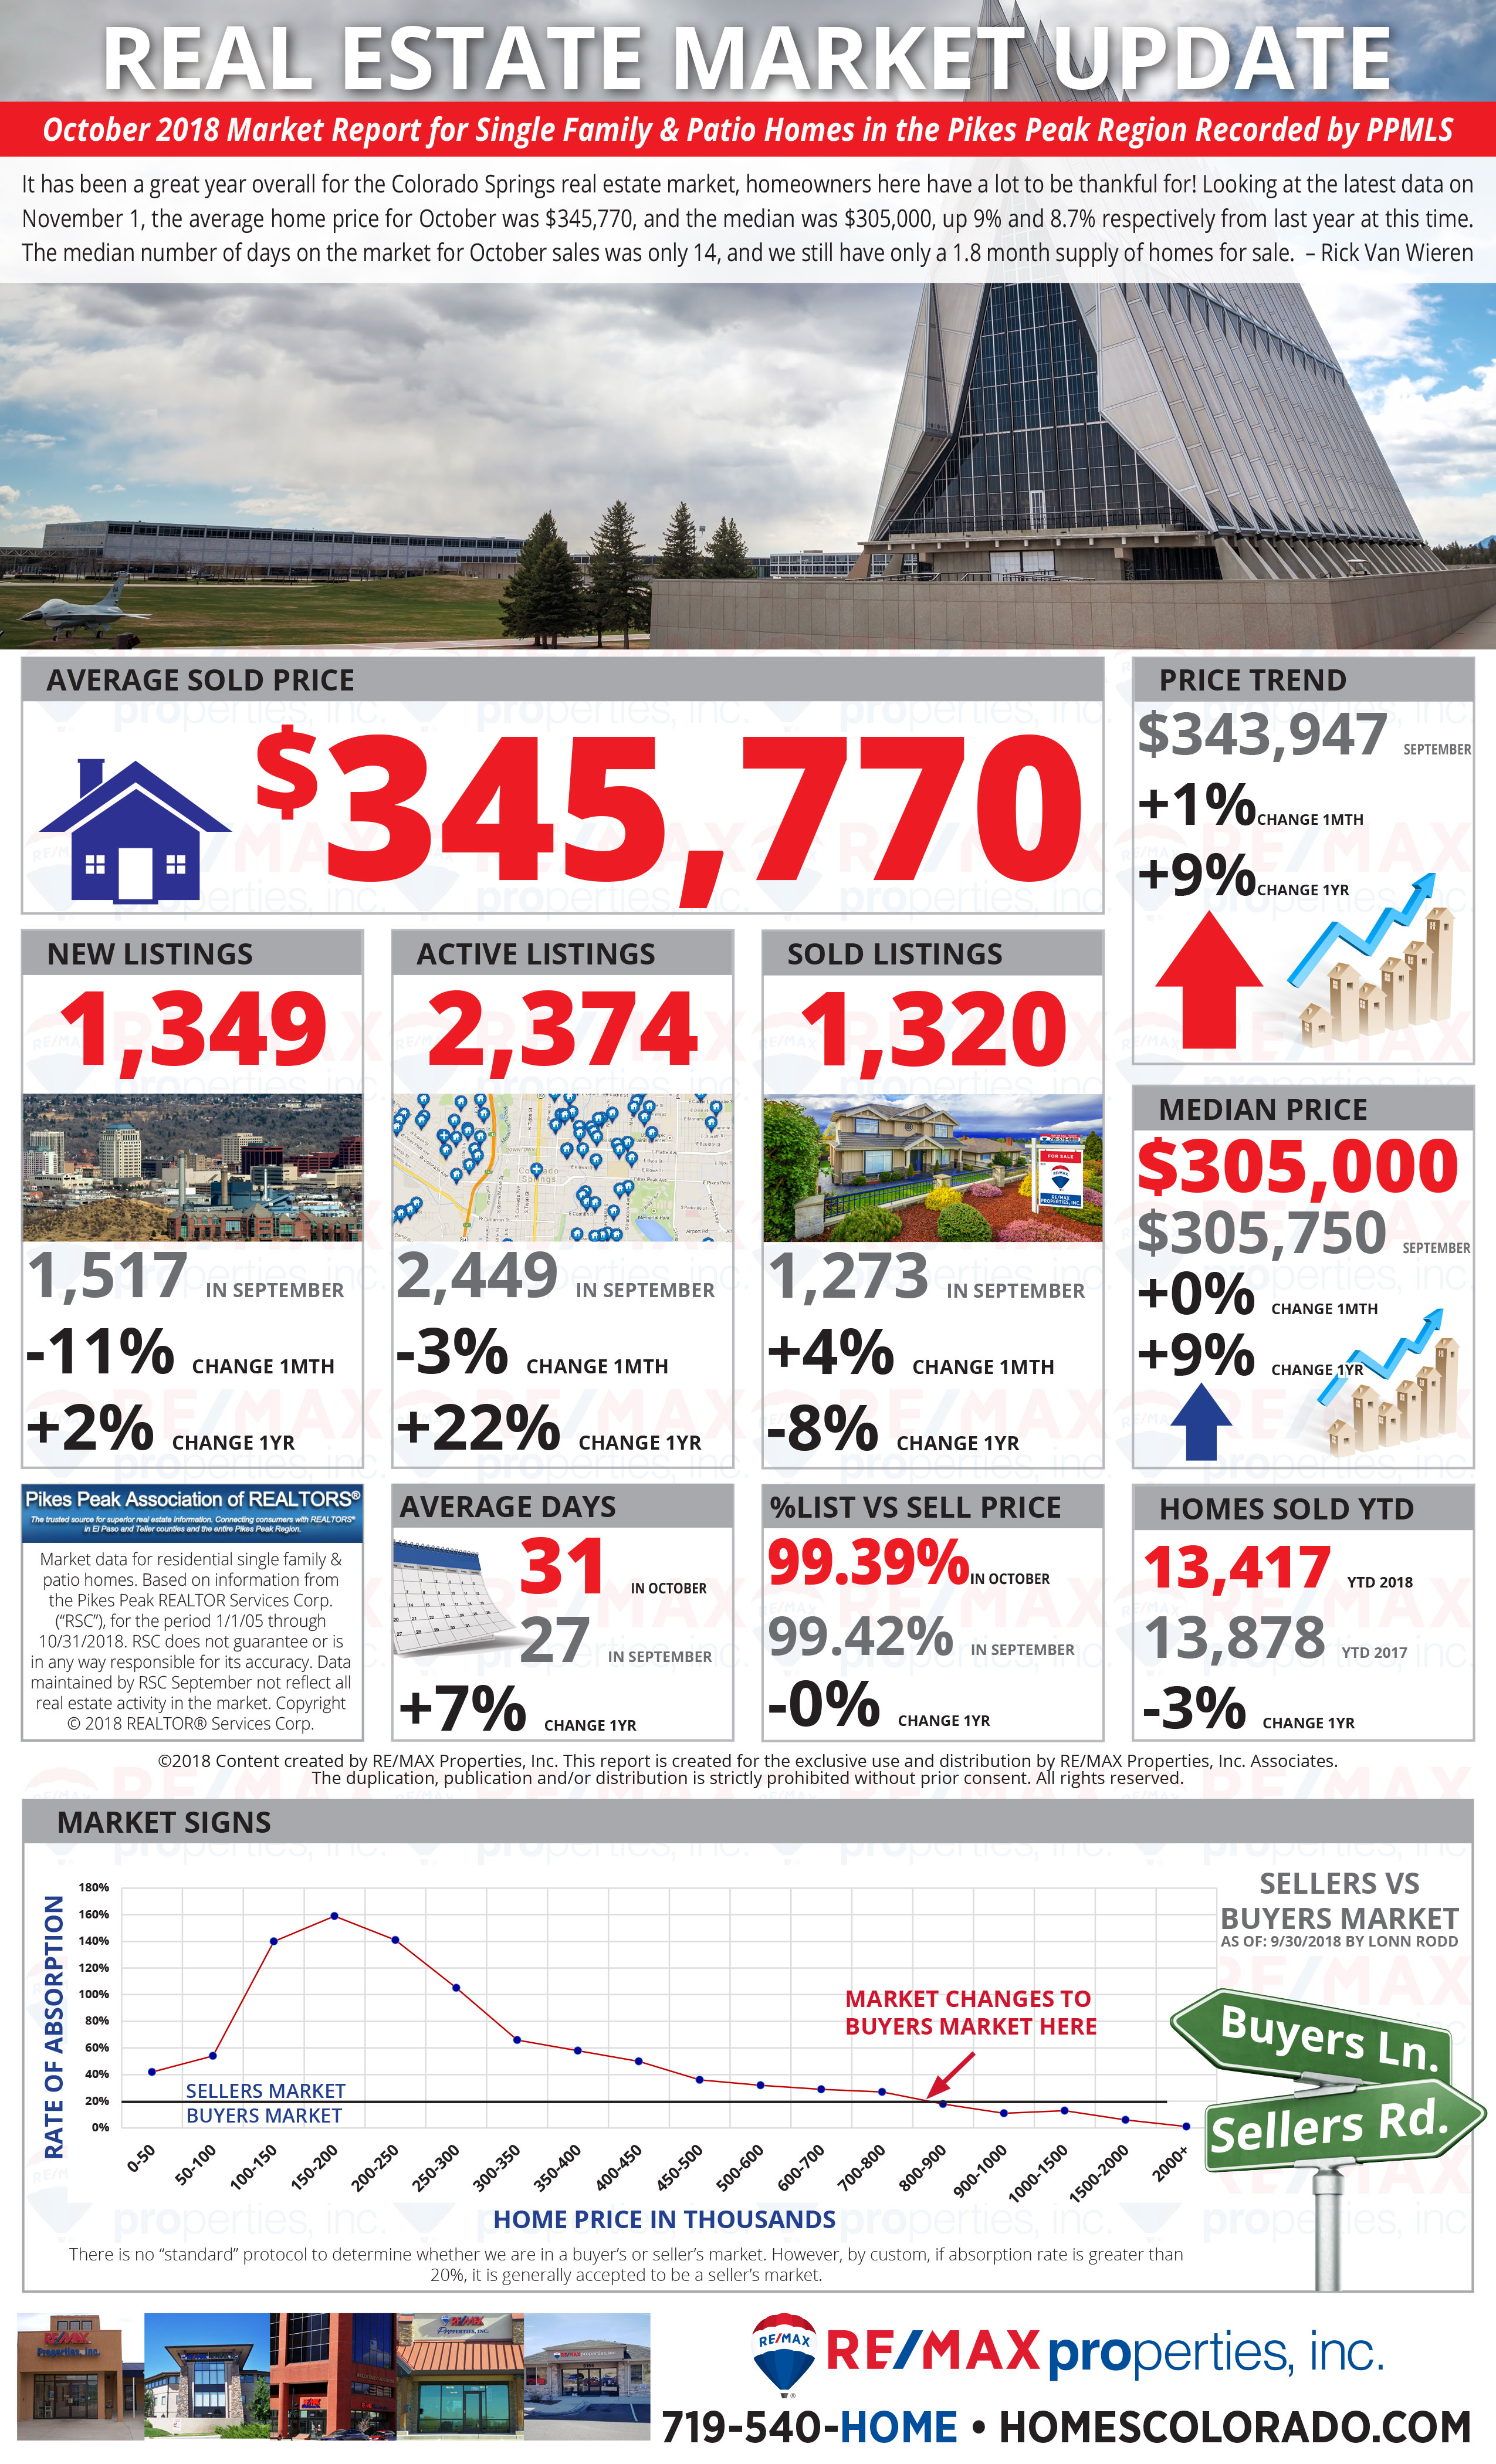 October 2018 Market Update - Colorado Springs Real Estate